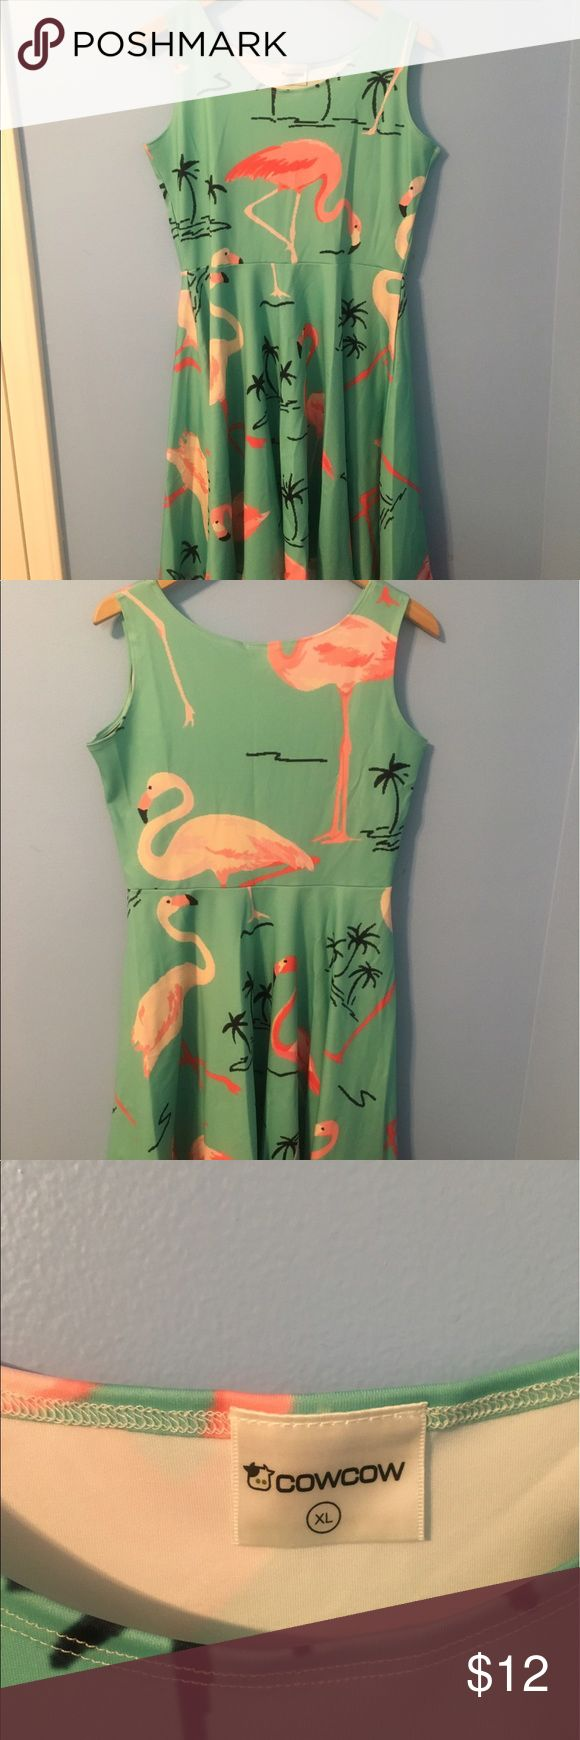 Perfect summer pool party dress!! CowCow flamingo dress. Super stretch. Never worn. 90% polyester, 10% spandex. Easy wash and dry! CowCow Dresses